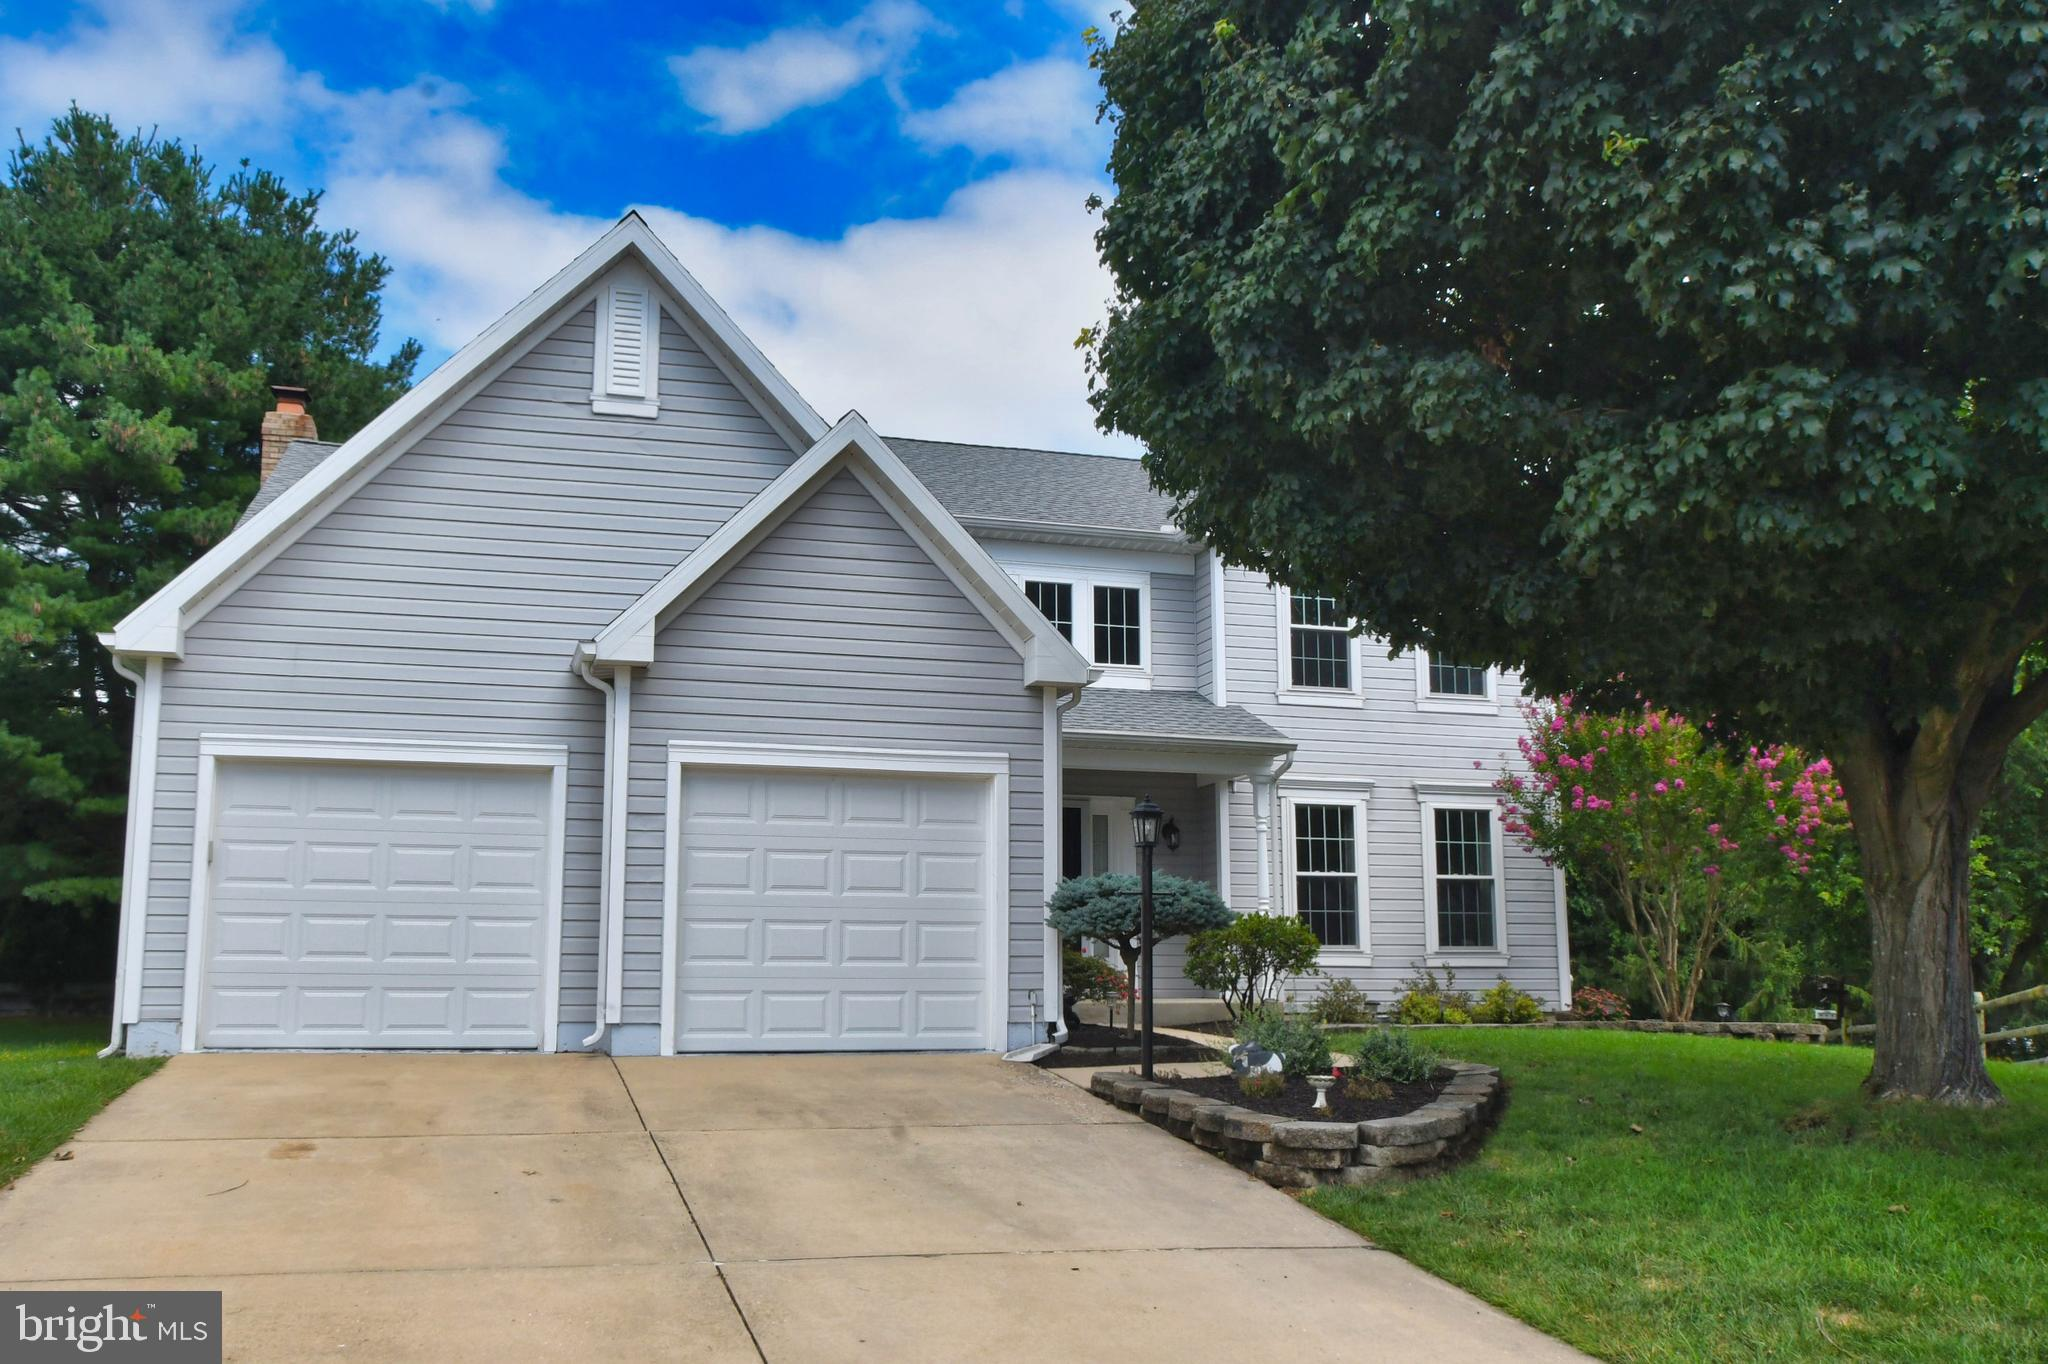 Welcome to 408 Golden Oaks Court in the popular Country Walk community! This beautiful 4 bedroom, 2